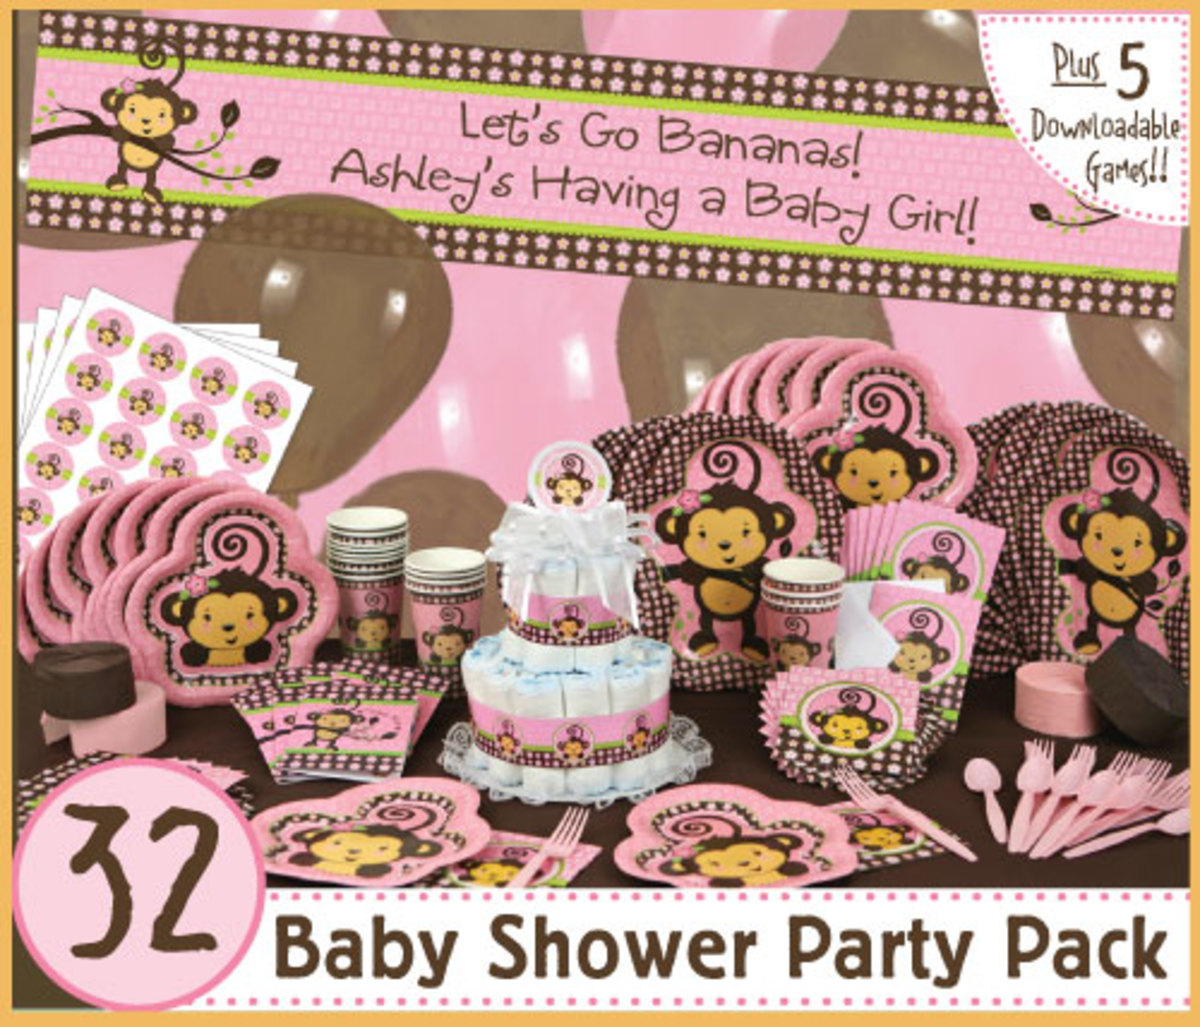 Monkey baby shower ideas decorations - Baby shower monkey decorations for a girl ...